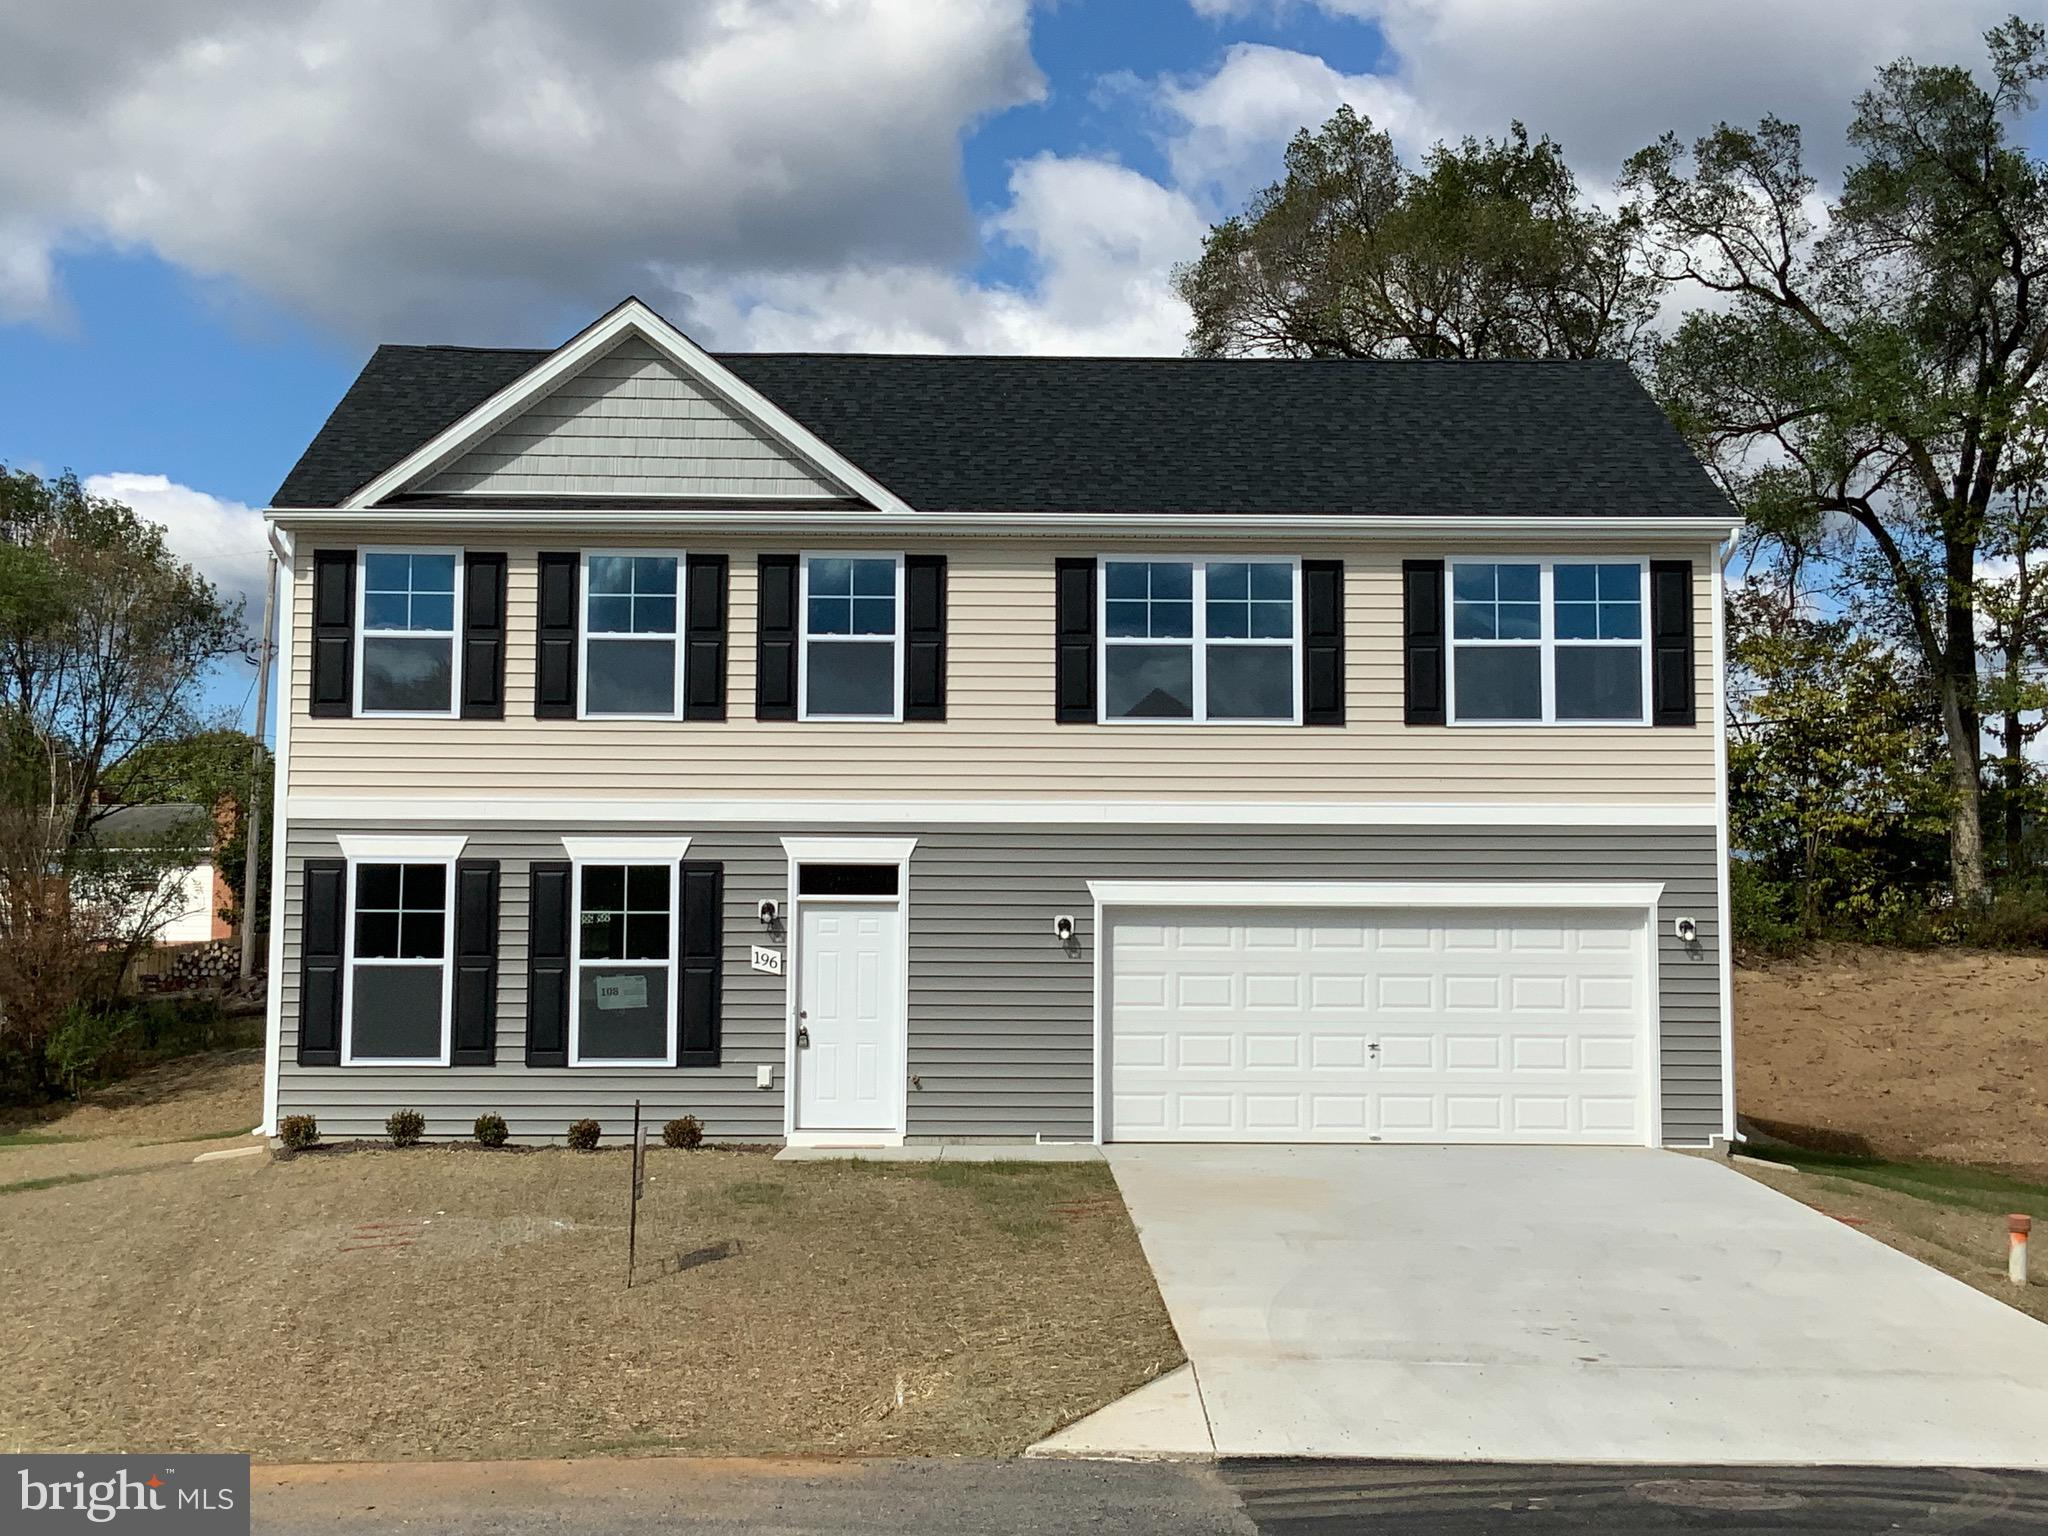 BUILDER WILL PAY UP TO $7500 TOWARDS CLOSING COST ON THIS FOUR BEDROOMS NEW COLONIAL HOME WITH GRANI